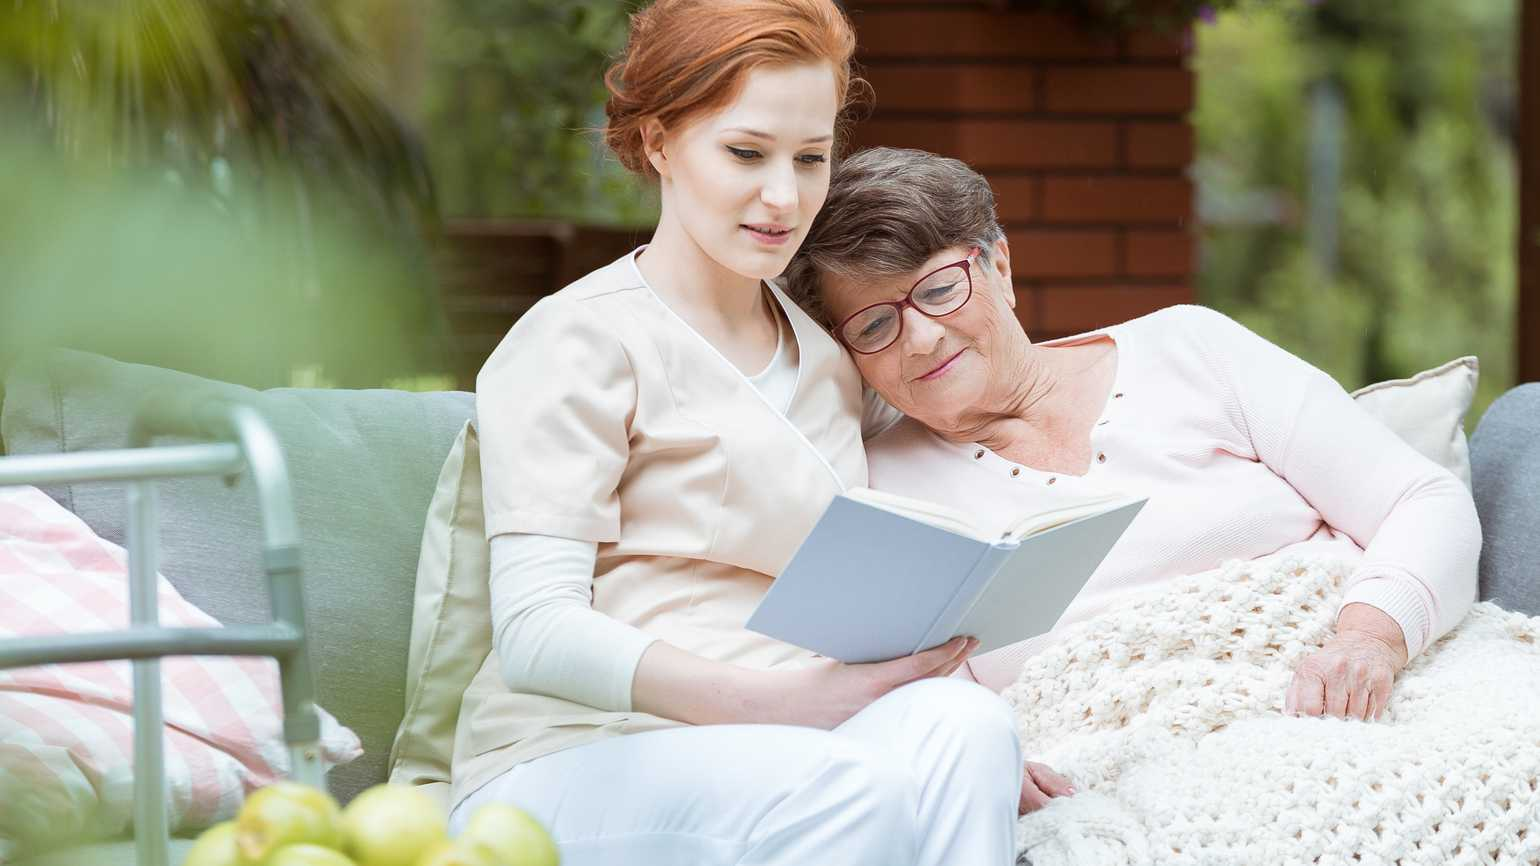 A hospice nurse reading to a senior patient outside.